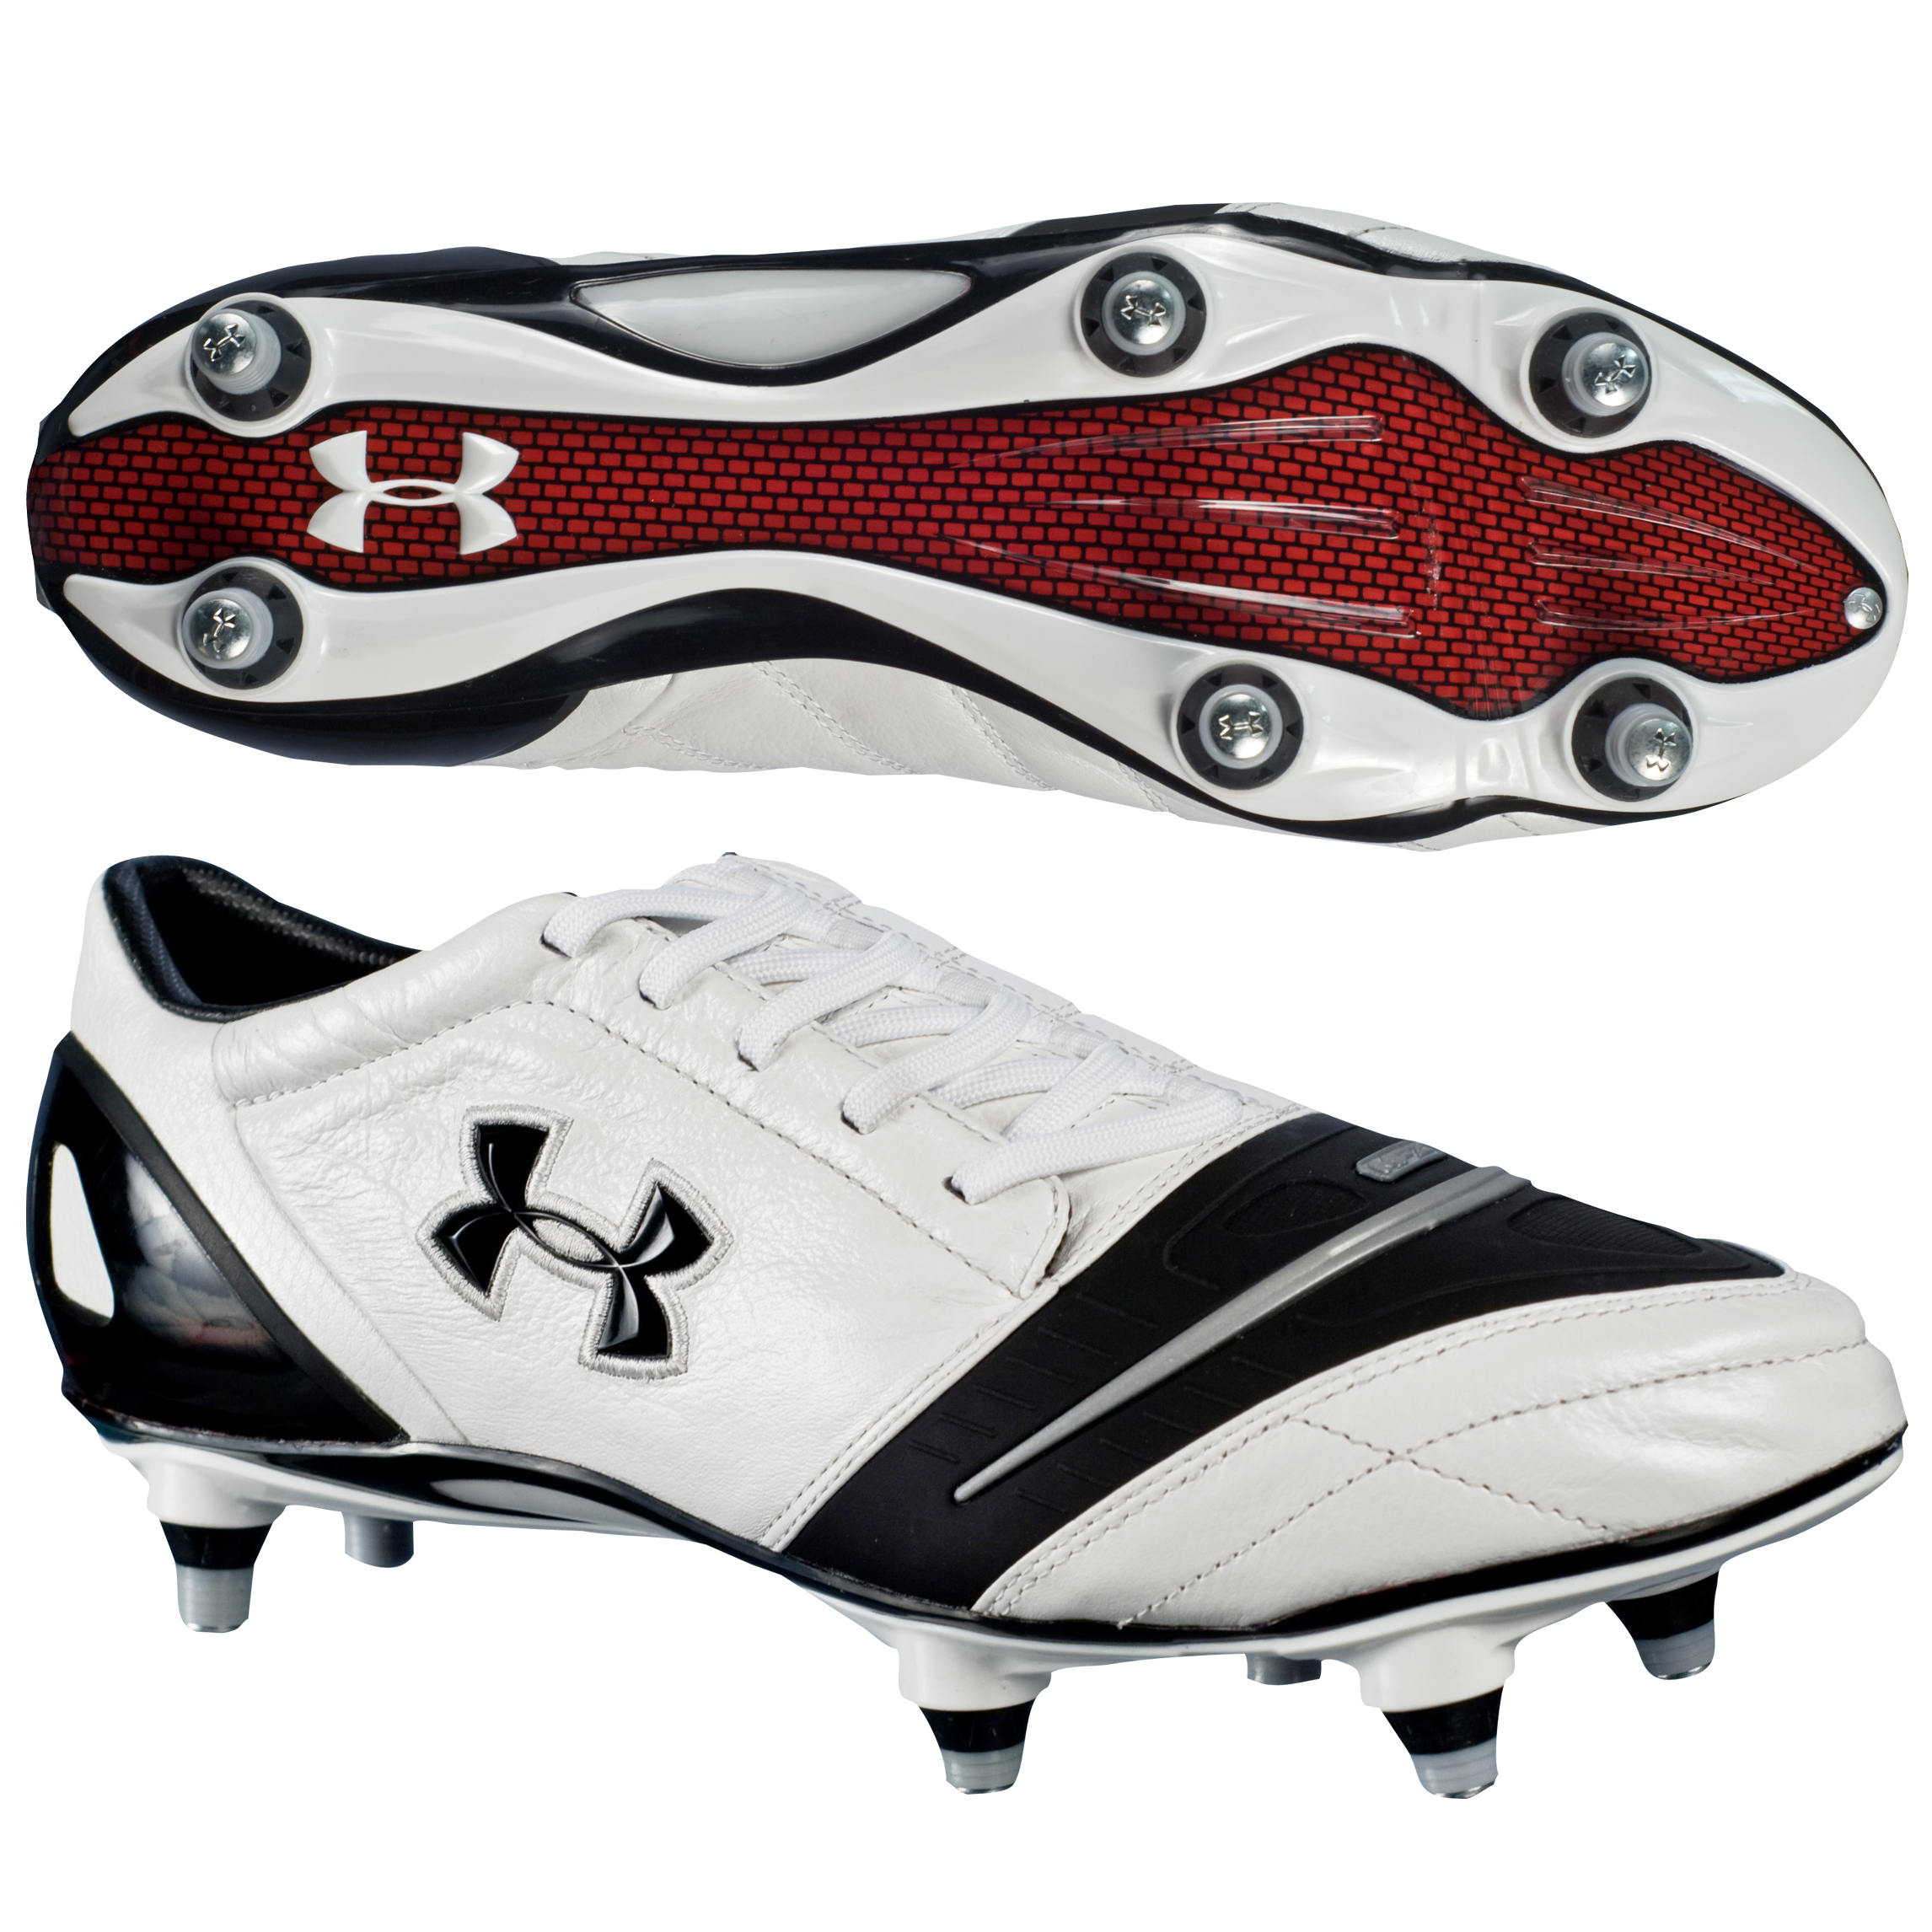 Under Armour Dominate Pro Soft Ground Football Boots -W